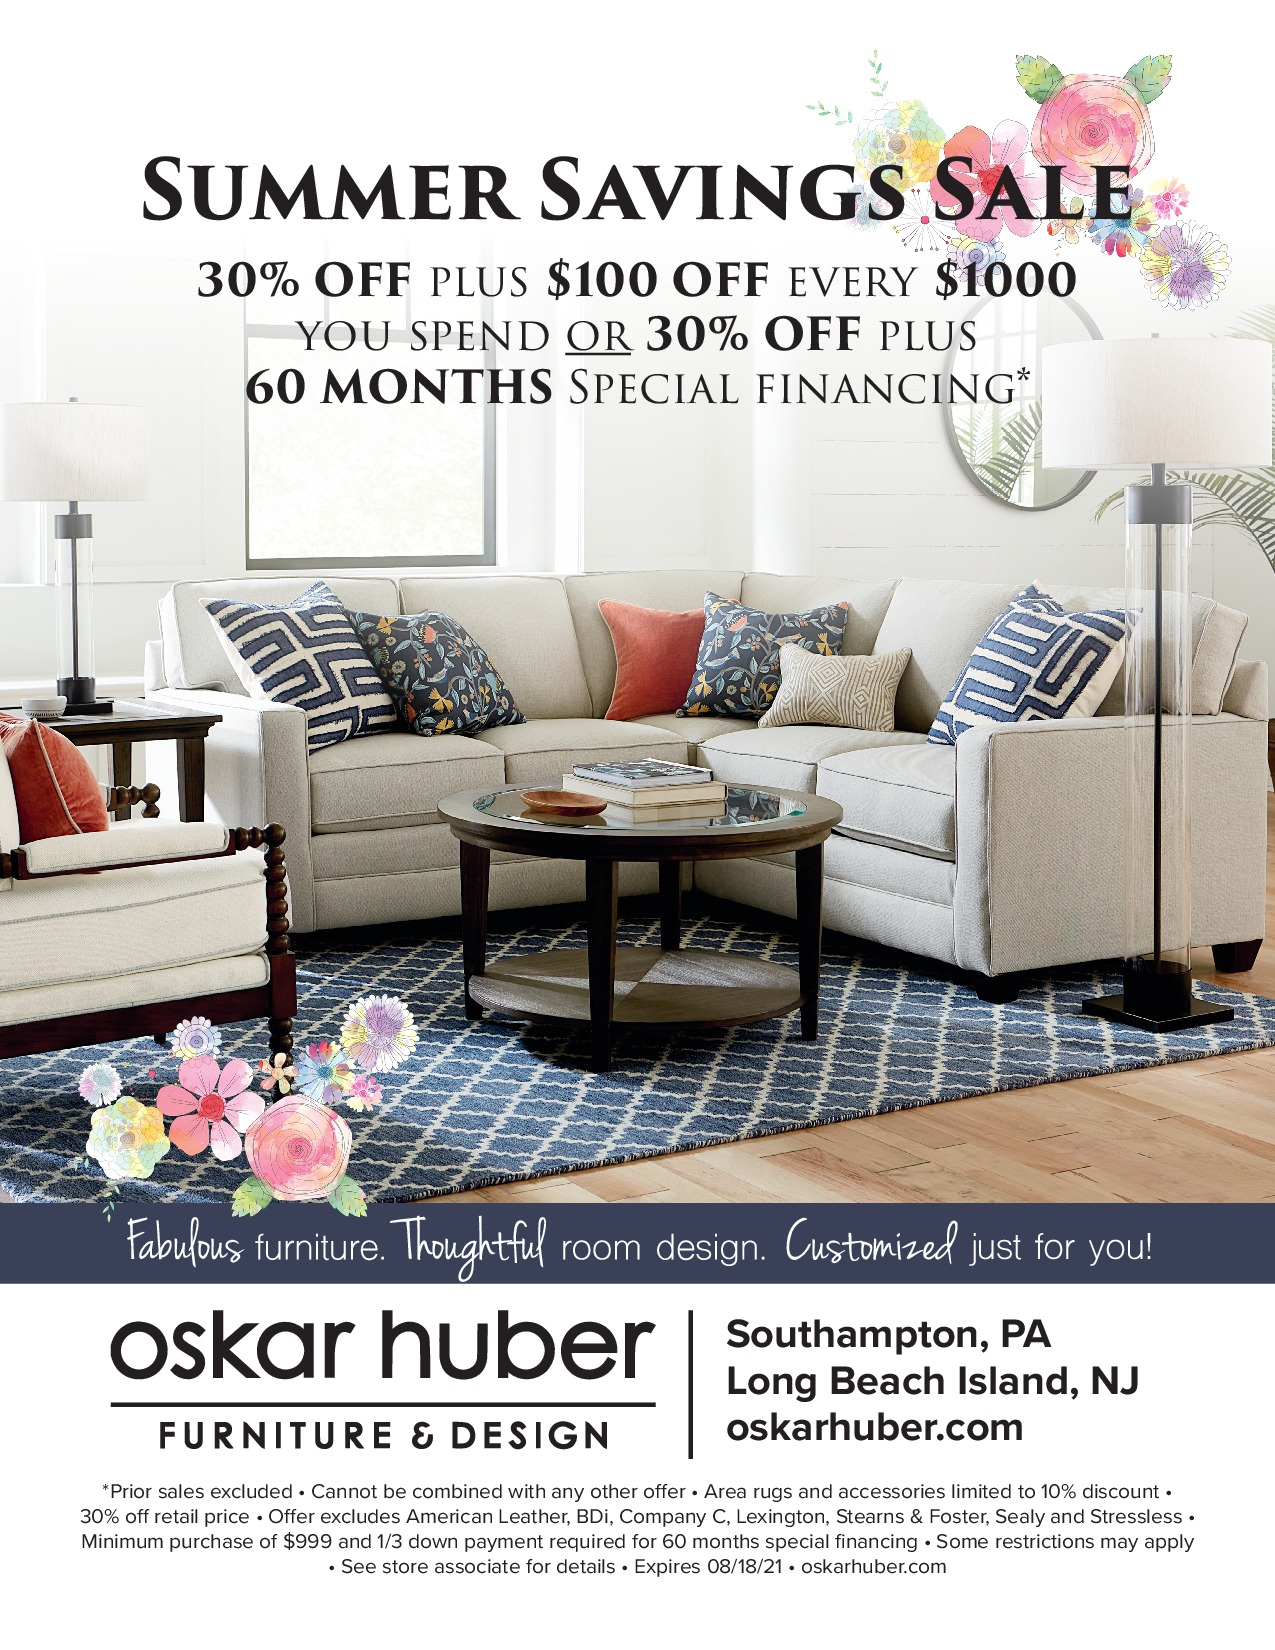 Web_Special_Page_OH_20210618_Campaign_Summer_Savings_Sale_071321_081821